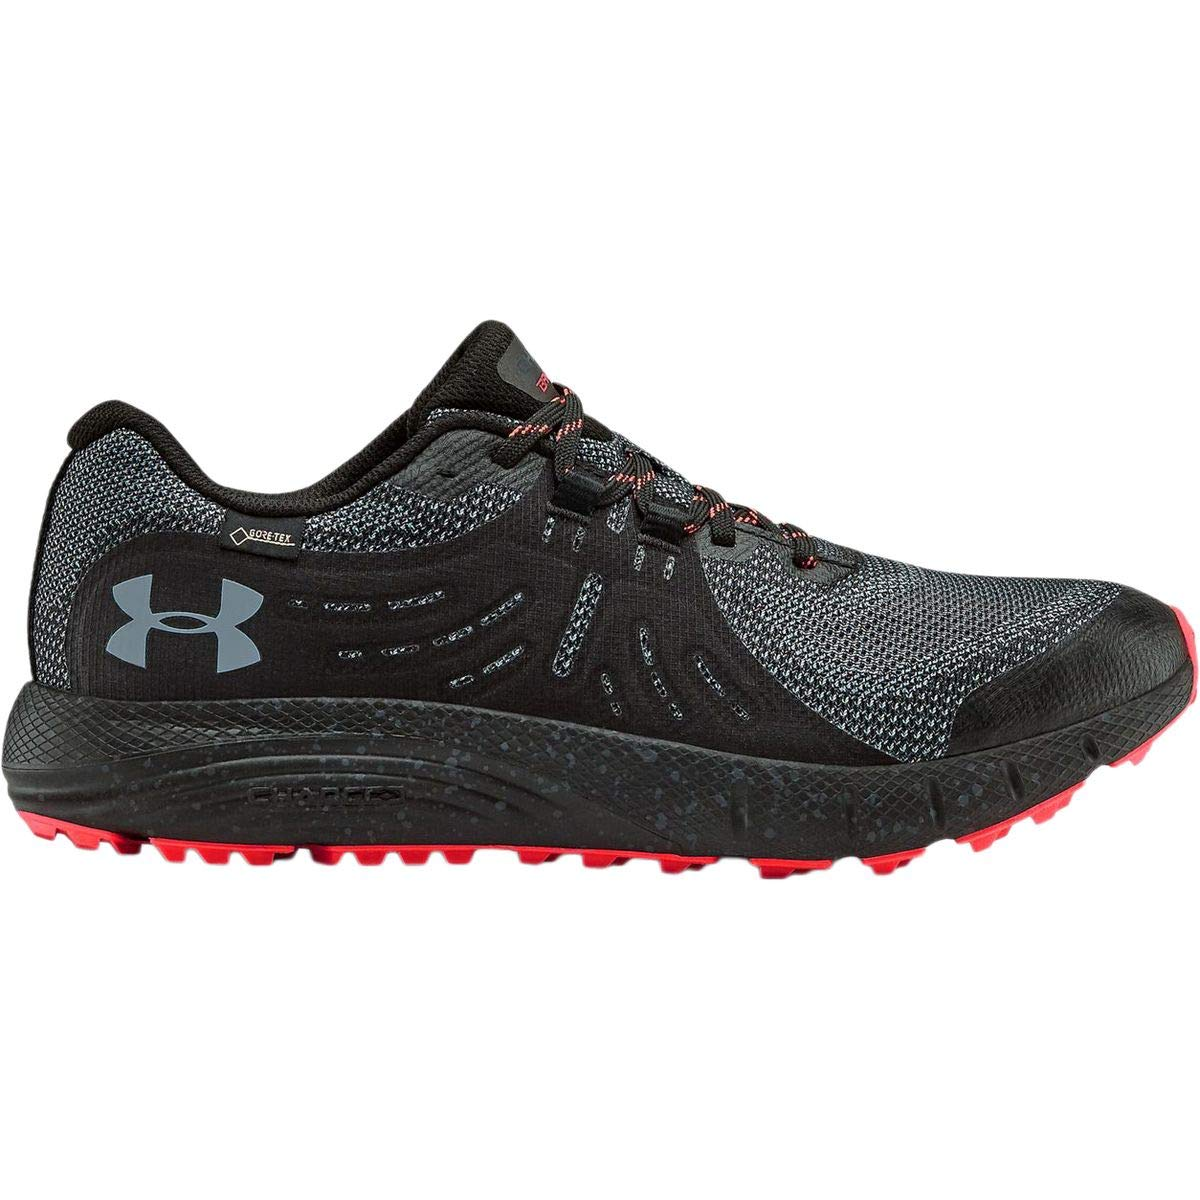 Under Armour Charged Bandit Trail Gore-Tex Zapatillas de Senderismo para Hombre: Amazon.es: Zapatos y complementos